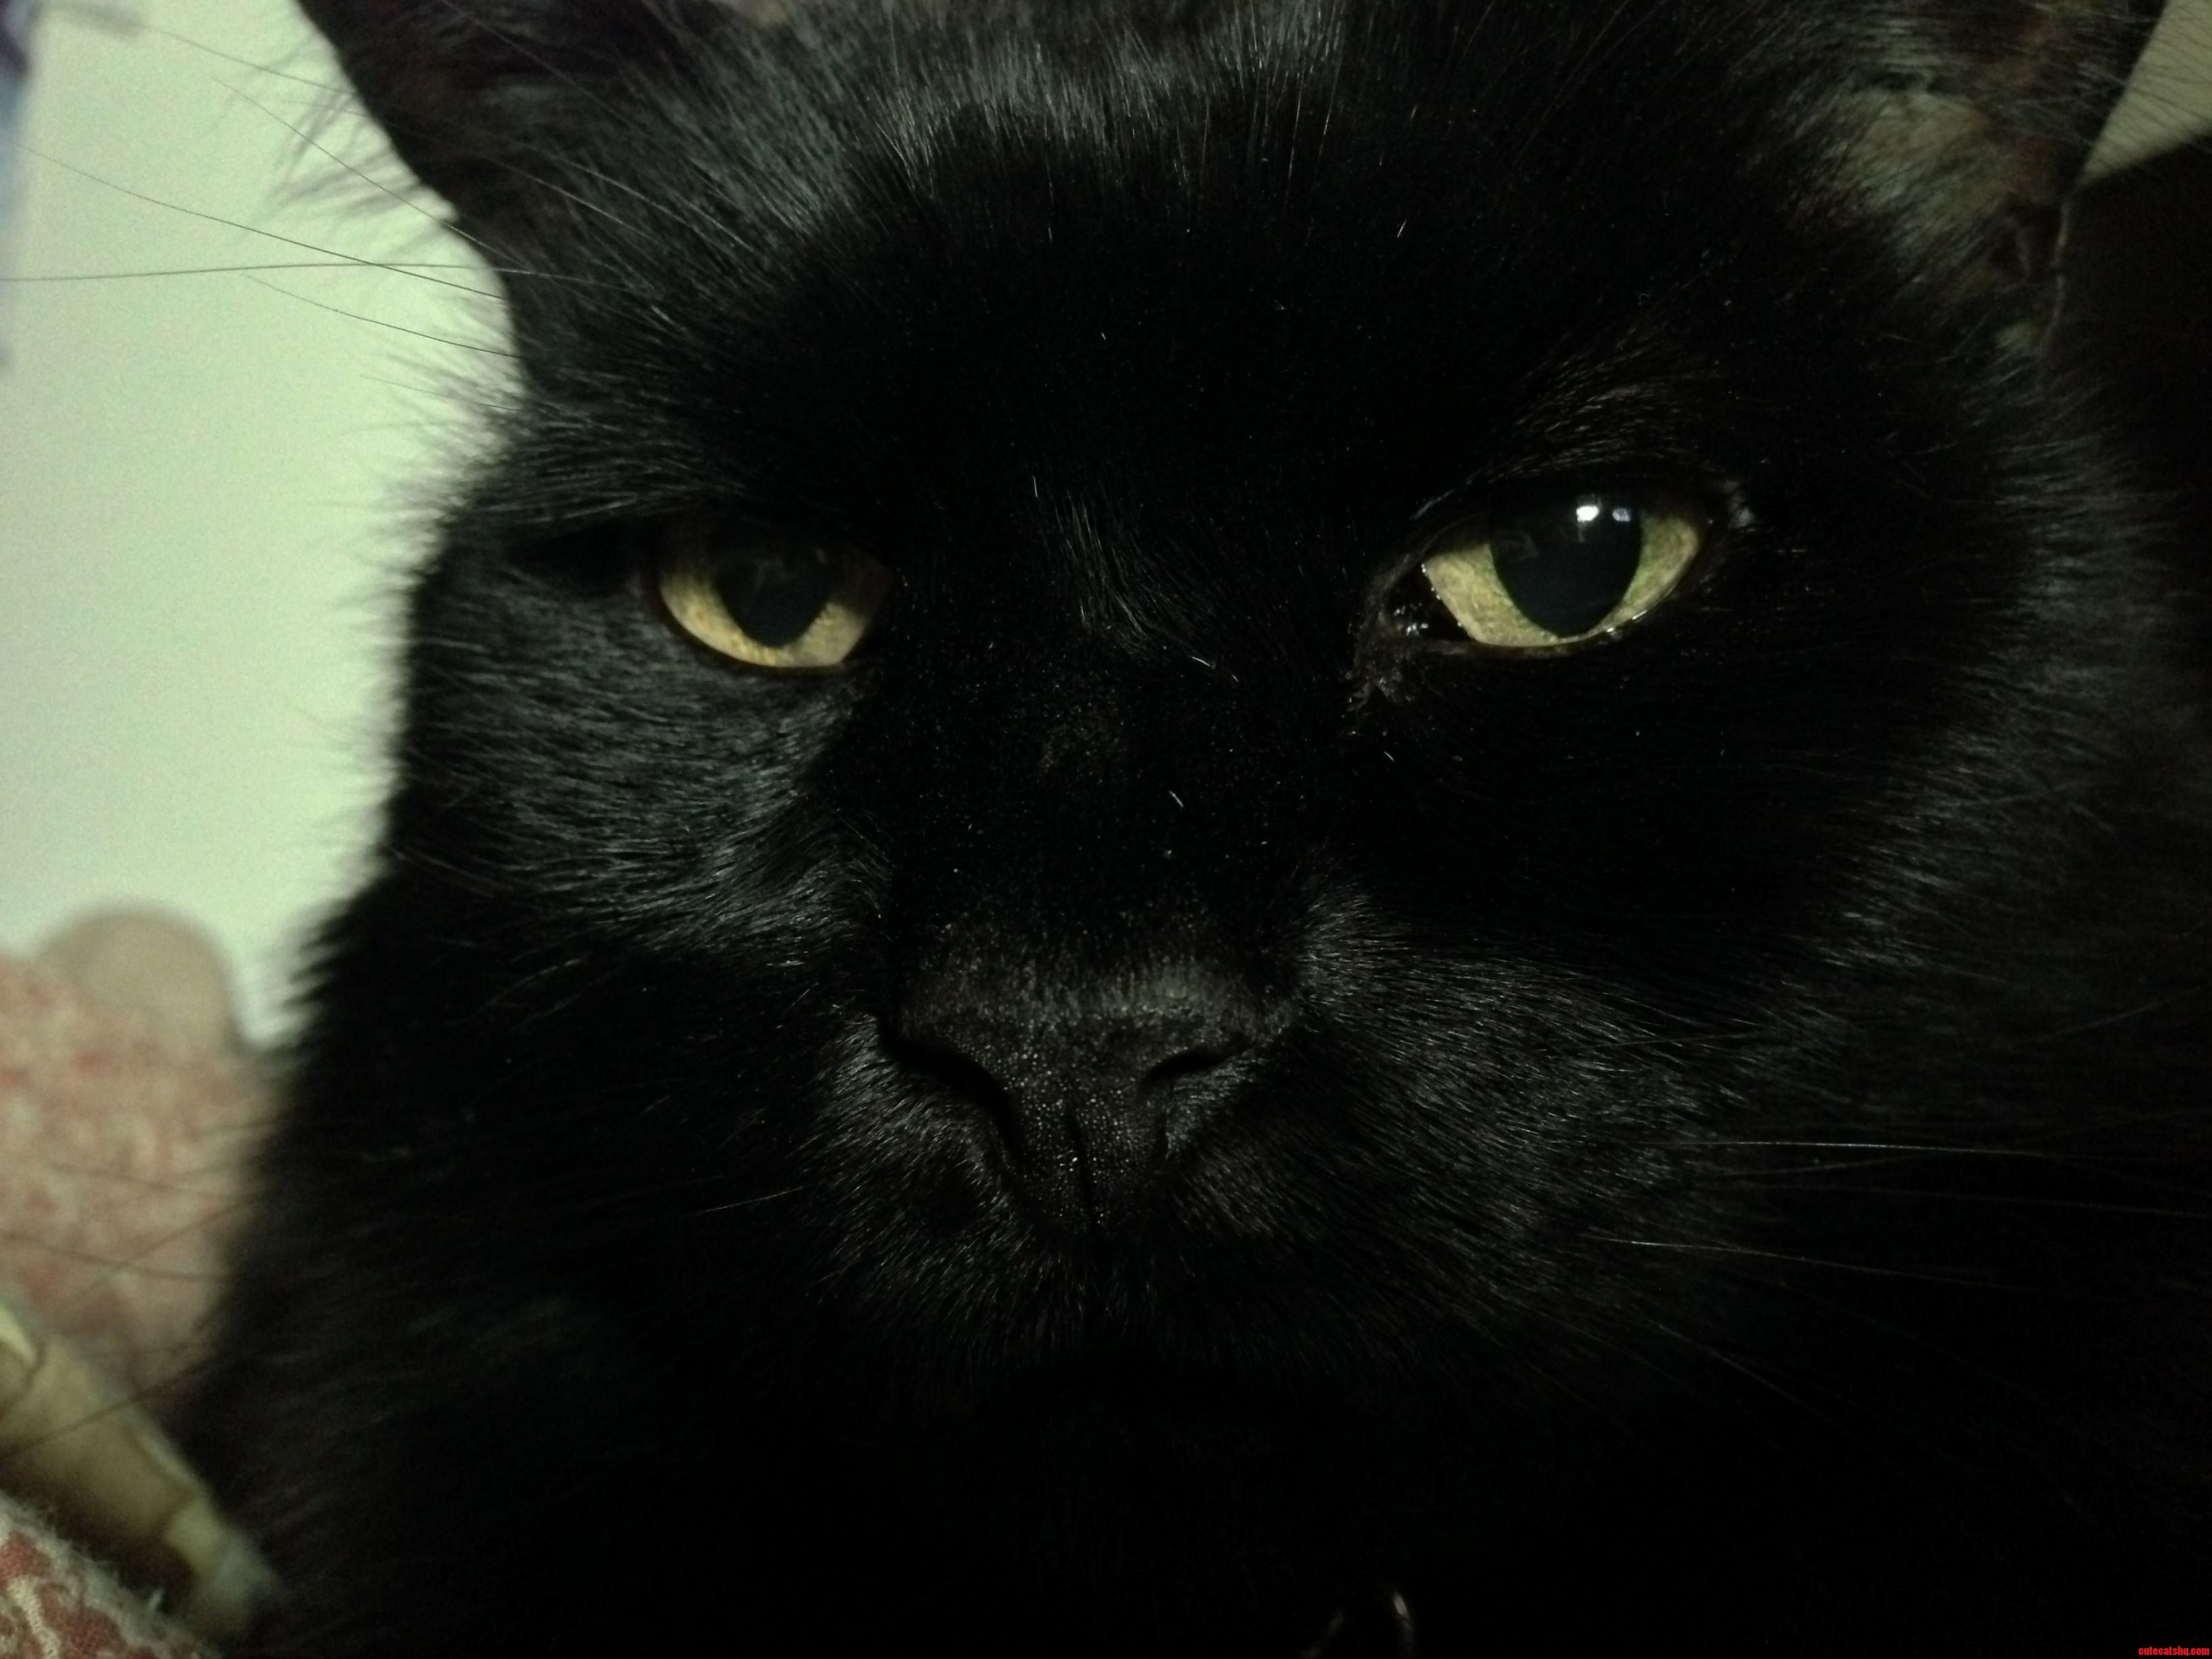 Black Cats Are So Hard To Photograph. One Of The Few Good Pictures I Have Of My Cat Blacky